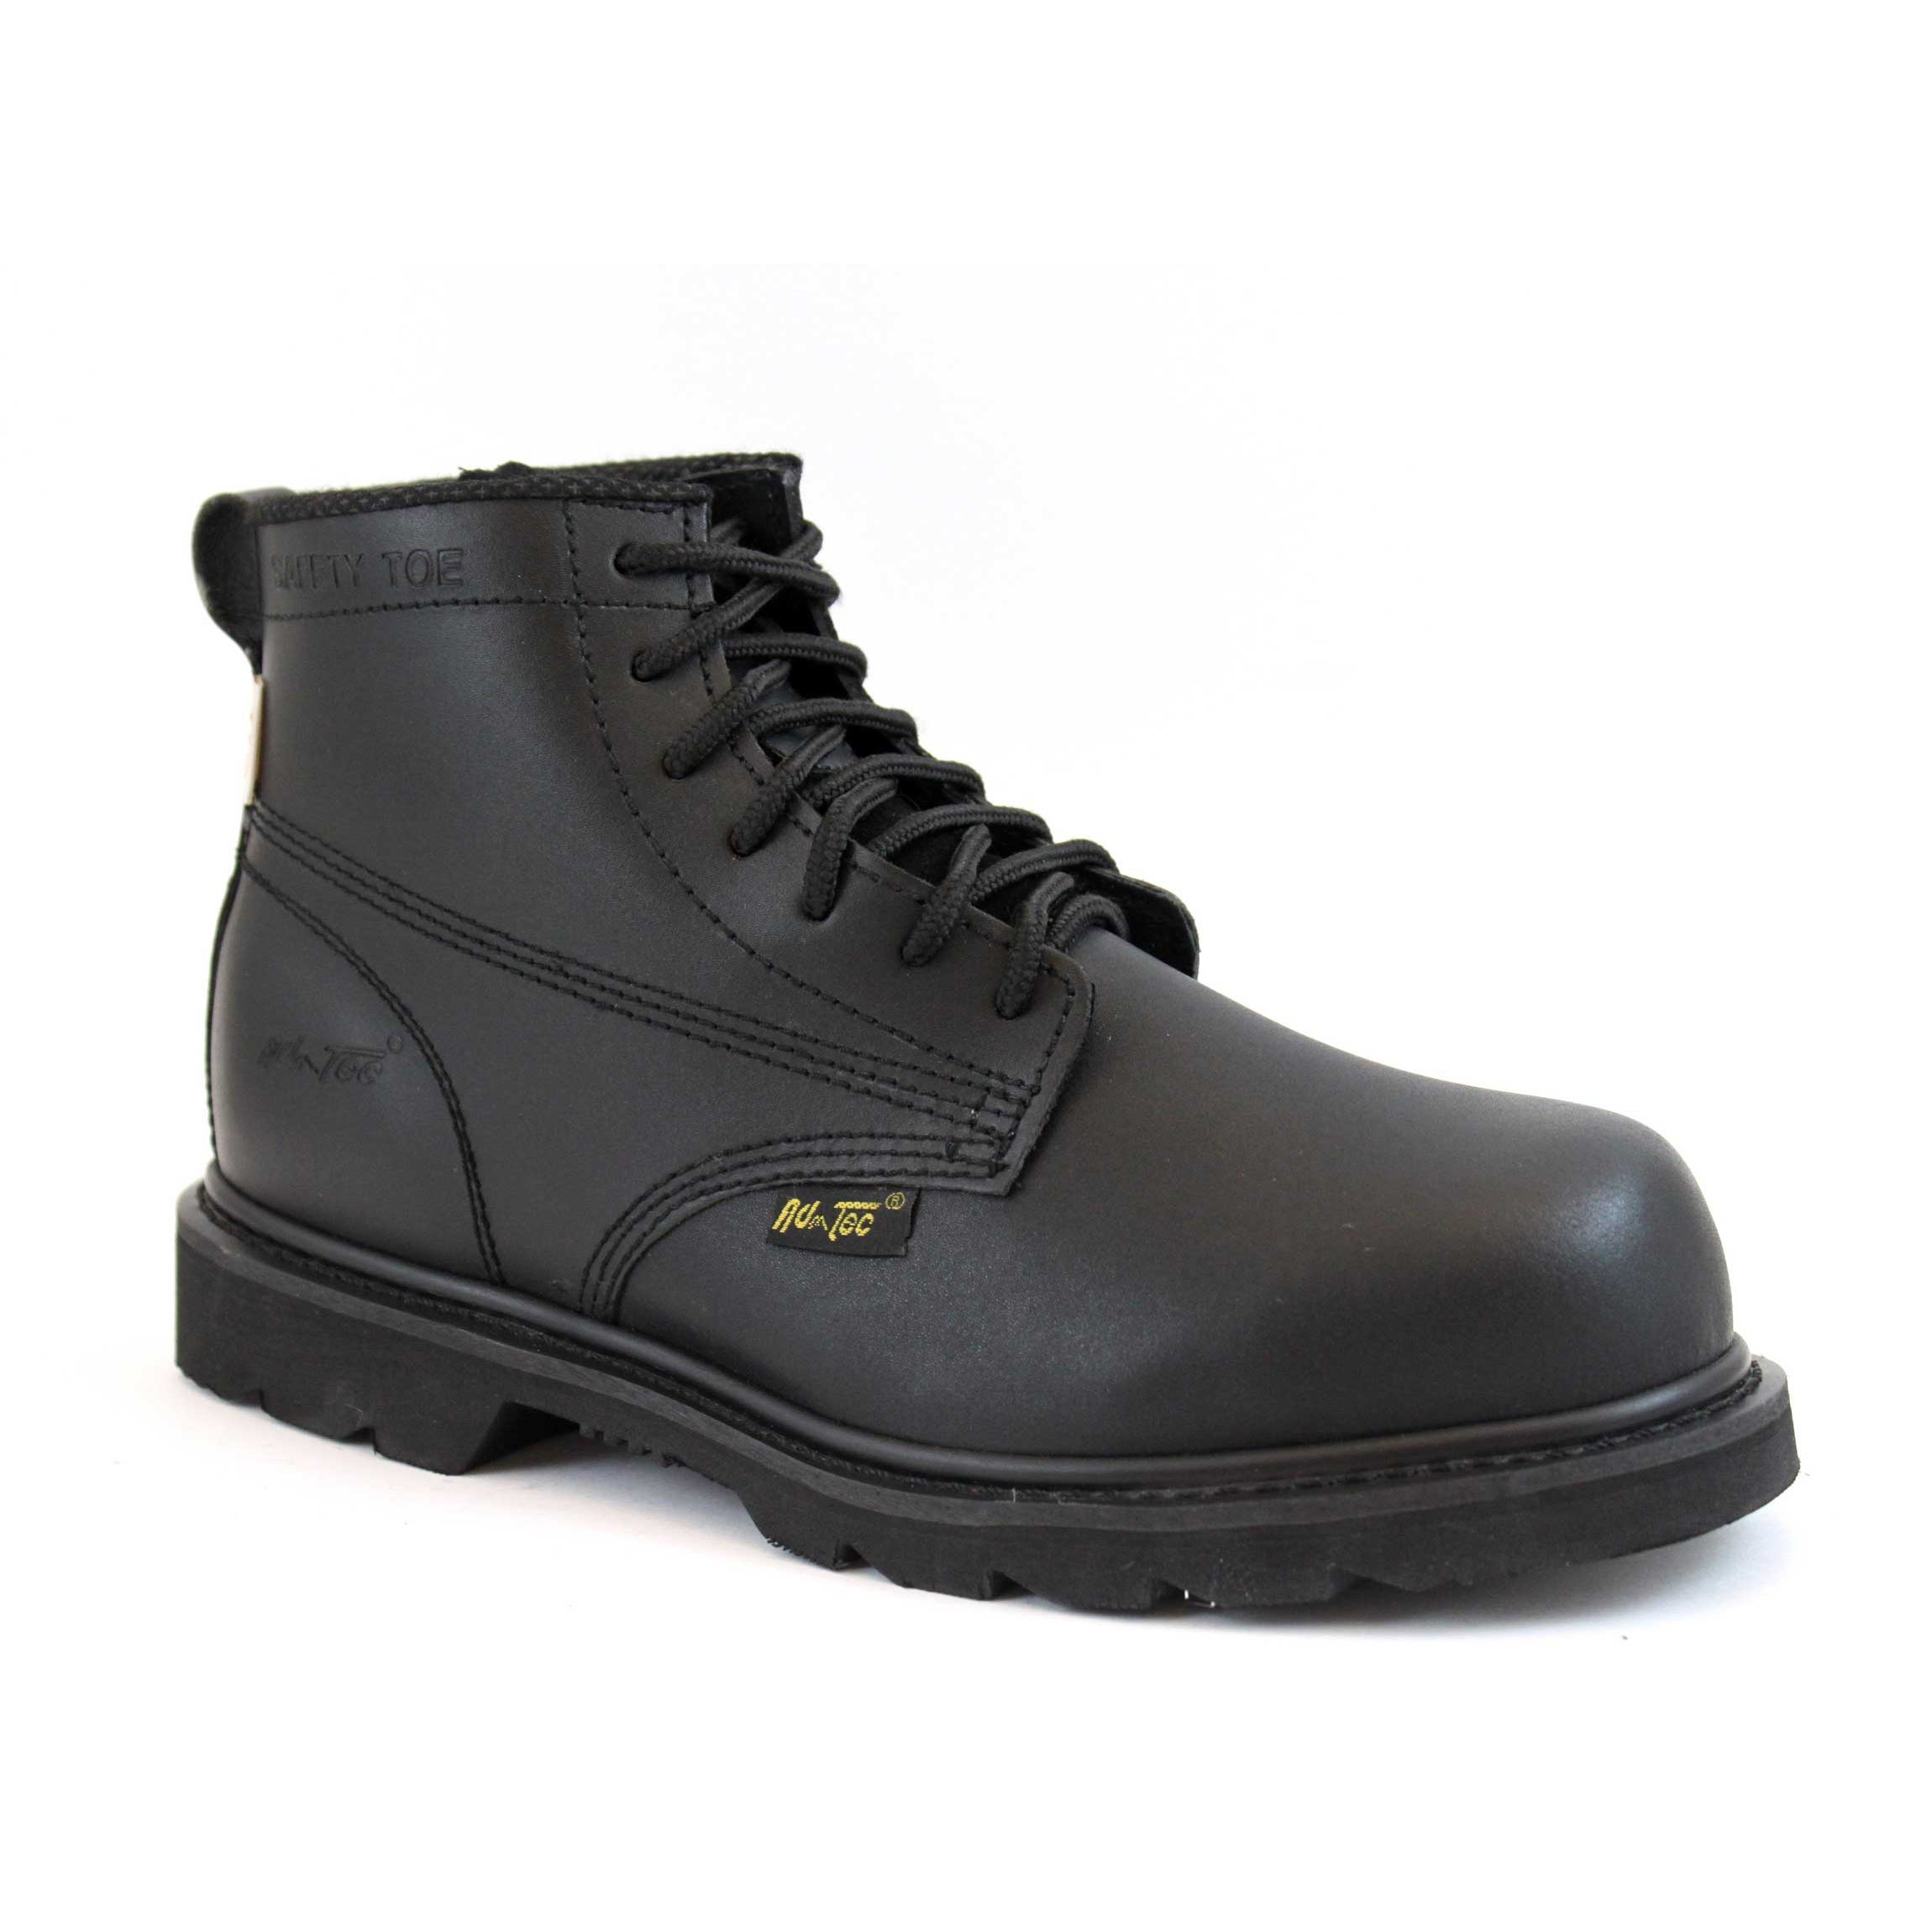 Action Leather Work Boots - Overstock